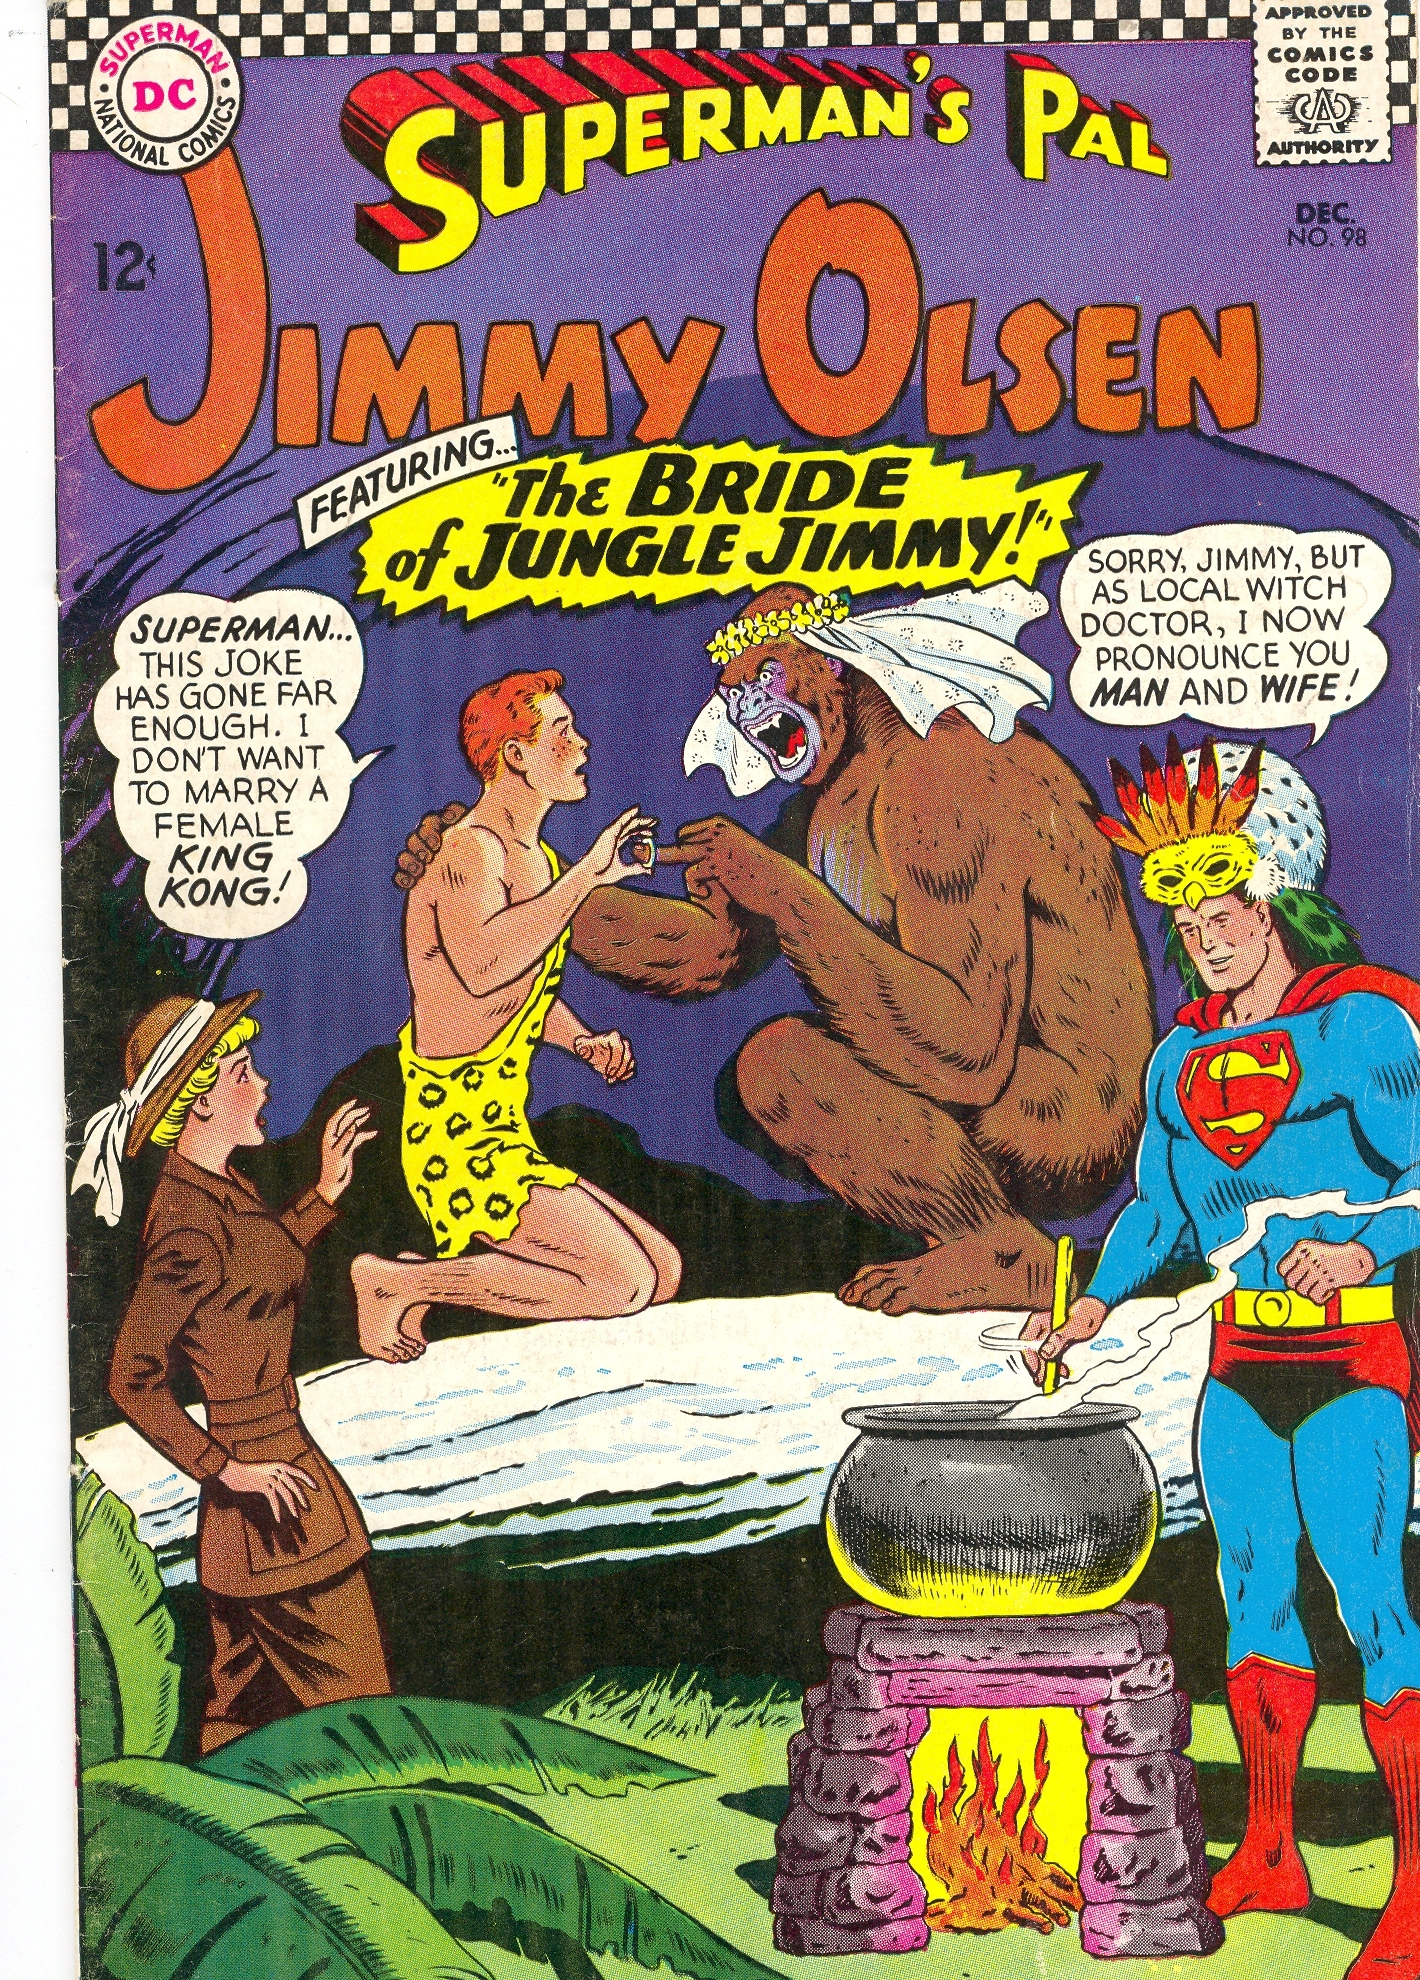 Jimmy Olsen, Superstar